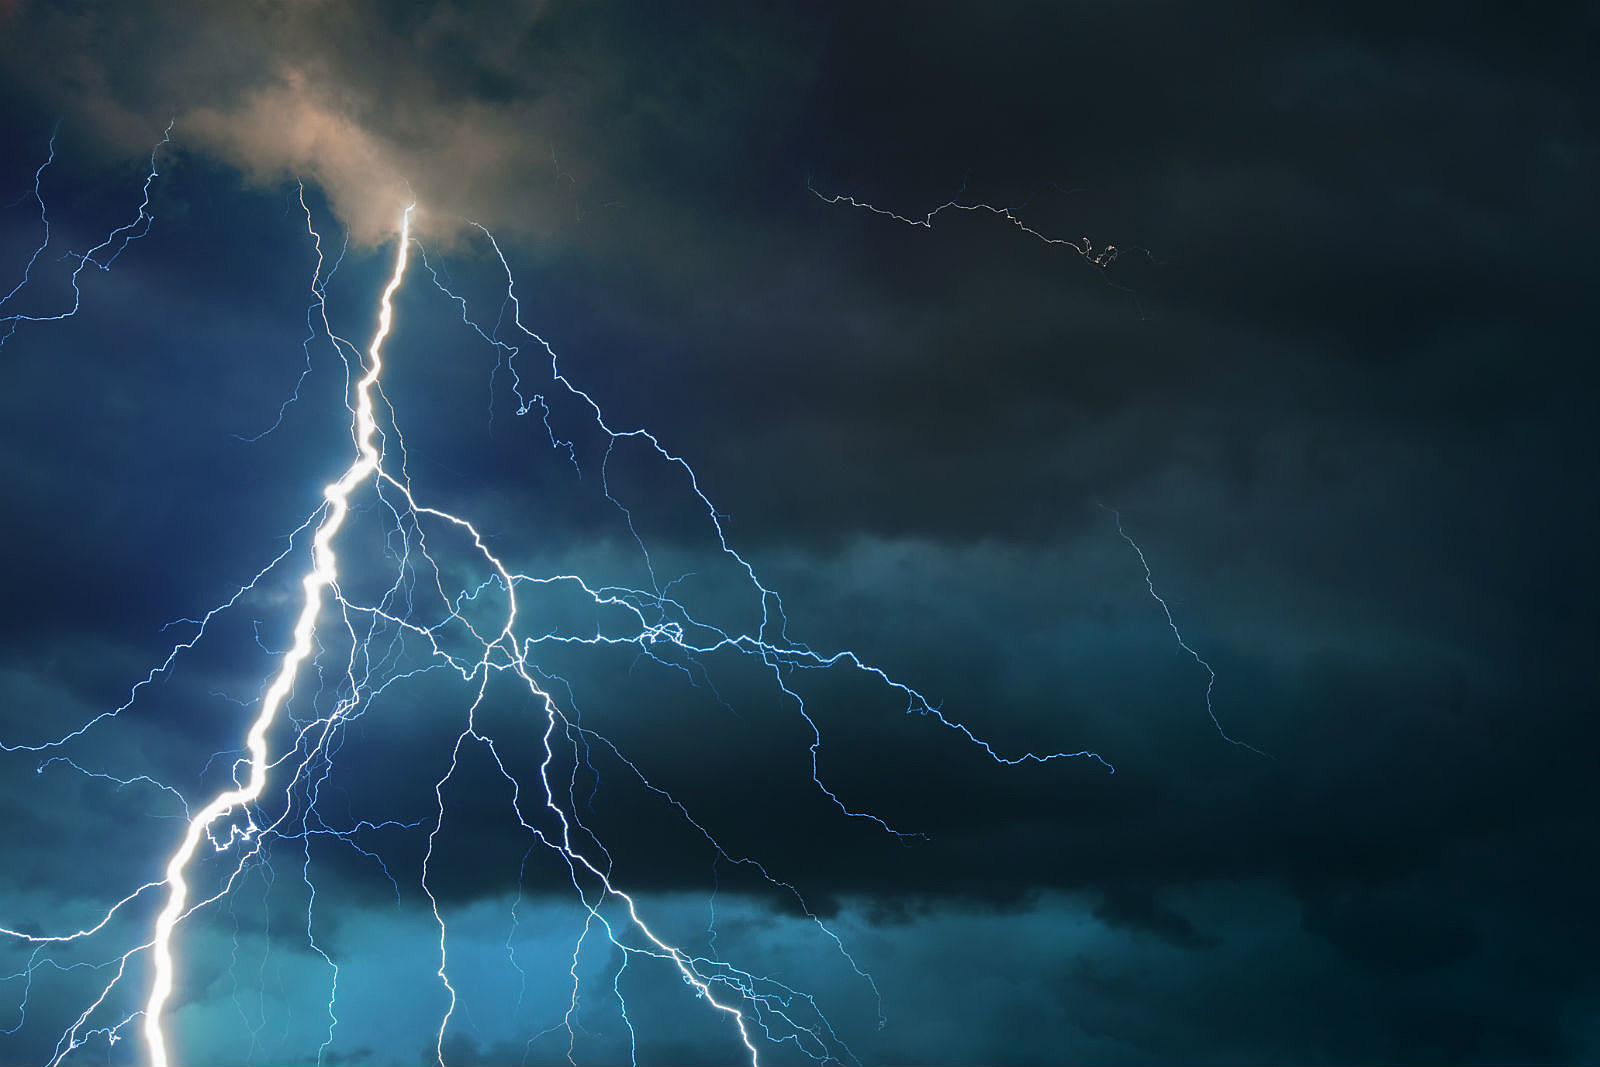 Severe Thunderstorm Warning Issued for Albany, Laramie Counties | KGAB